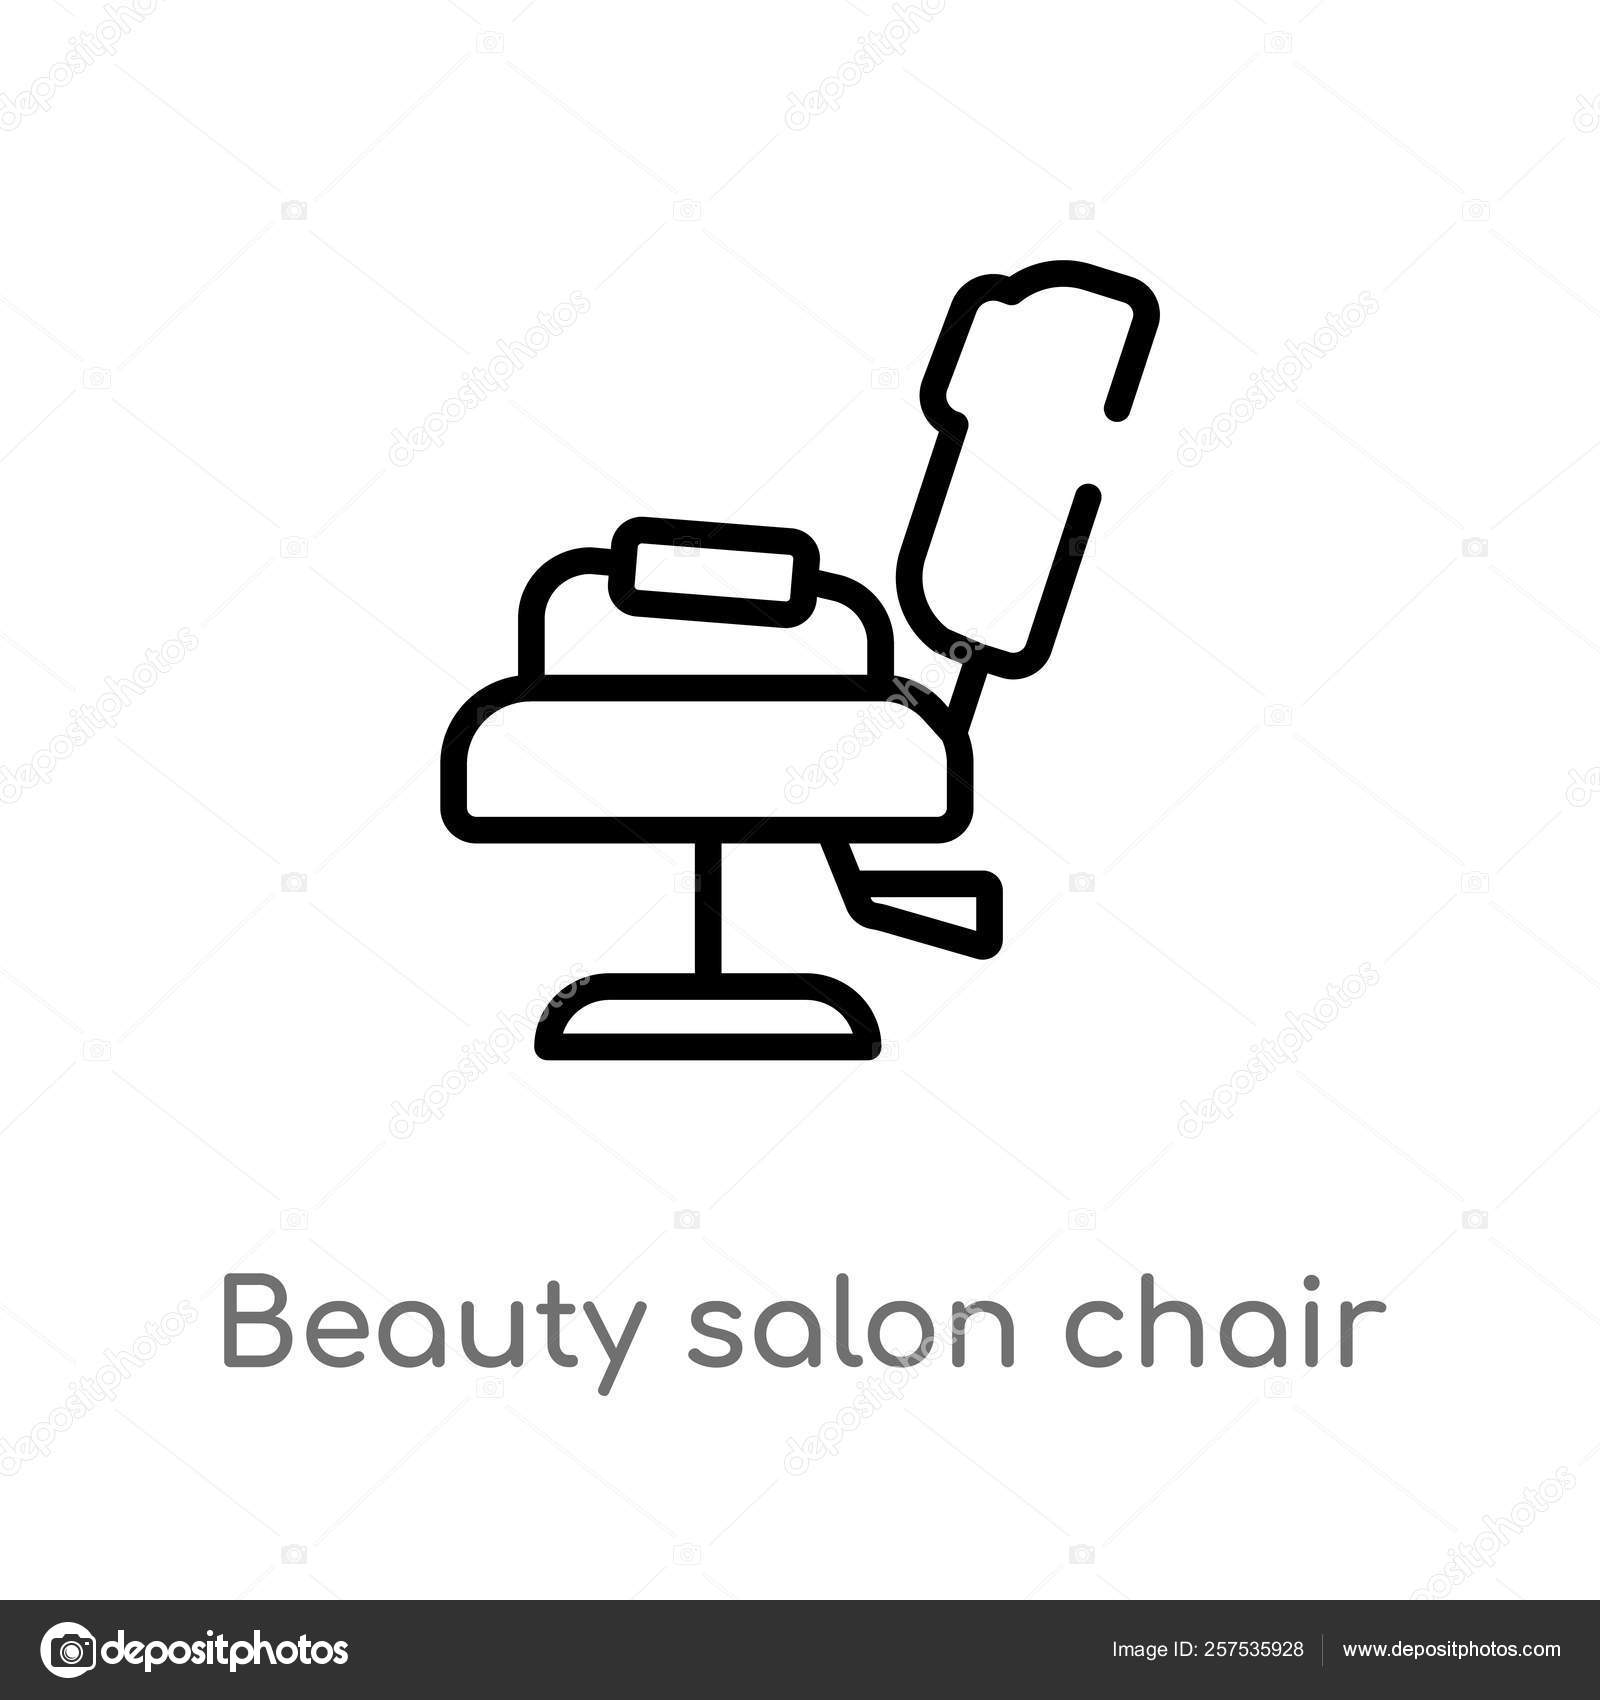 Tremendous Outline Beauty Salon Chair Vector Icon Isolated Black Simple Home Interior And Landscaping Eliaenasavecom